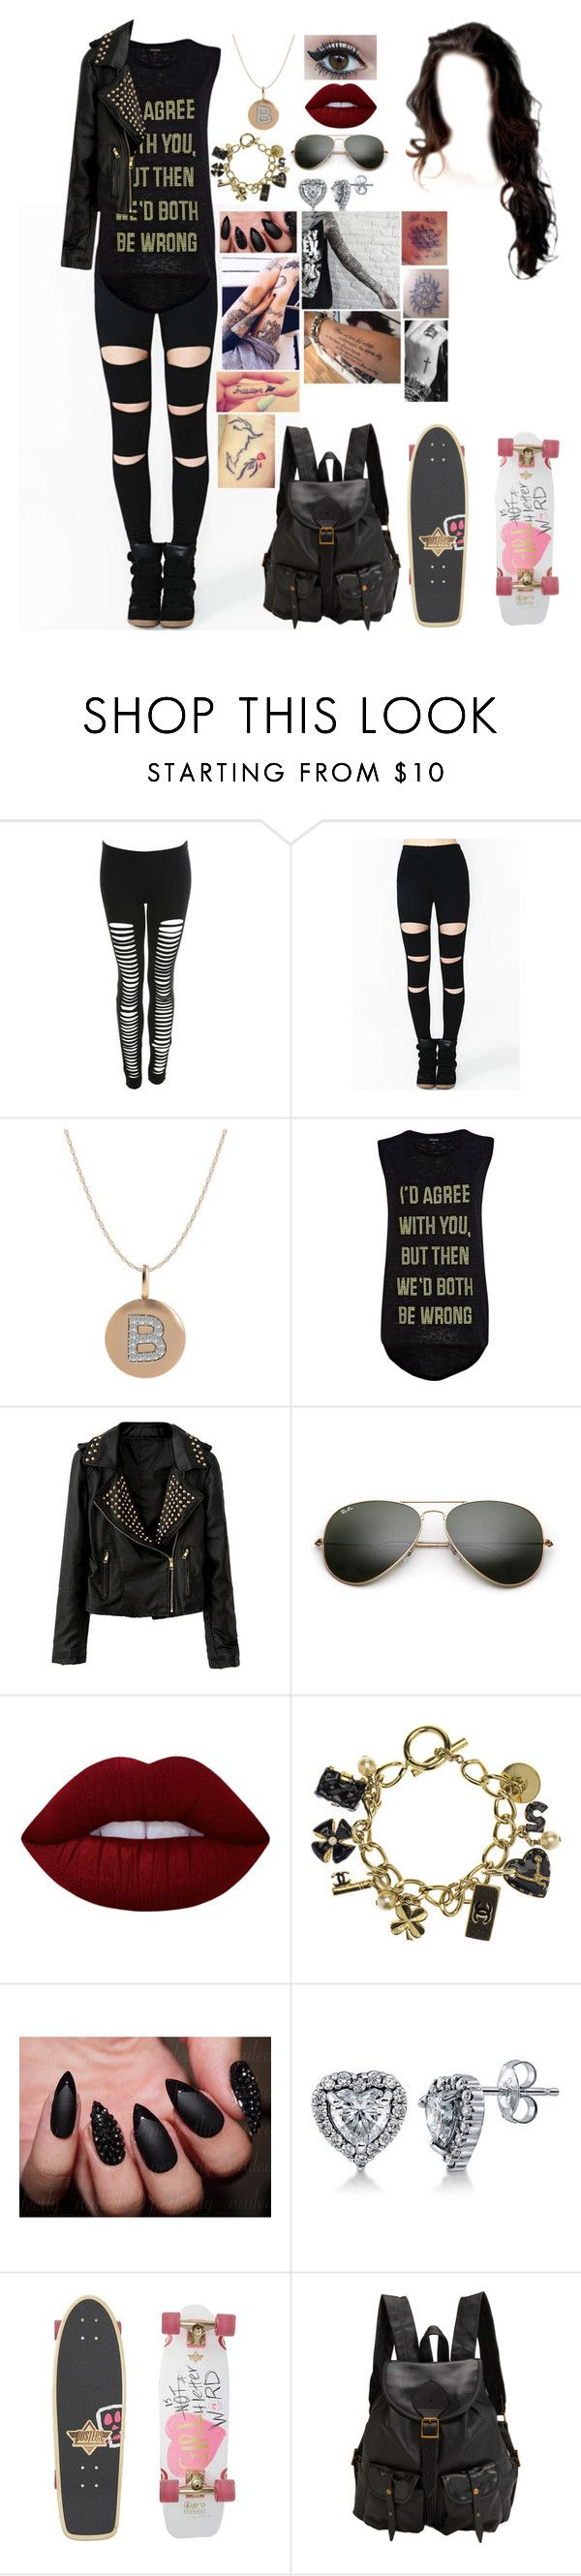 """Untitled #683"" by skh-siera18 ❤ liked on Polyvore featuring Miss Selfridge, River Island, Ray-Ban, Lime Crime, Chanel, BERRICLE, Disney, Dusters and Jas M.B."